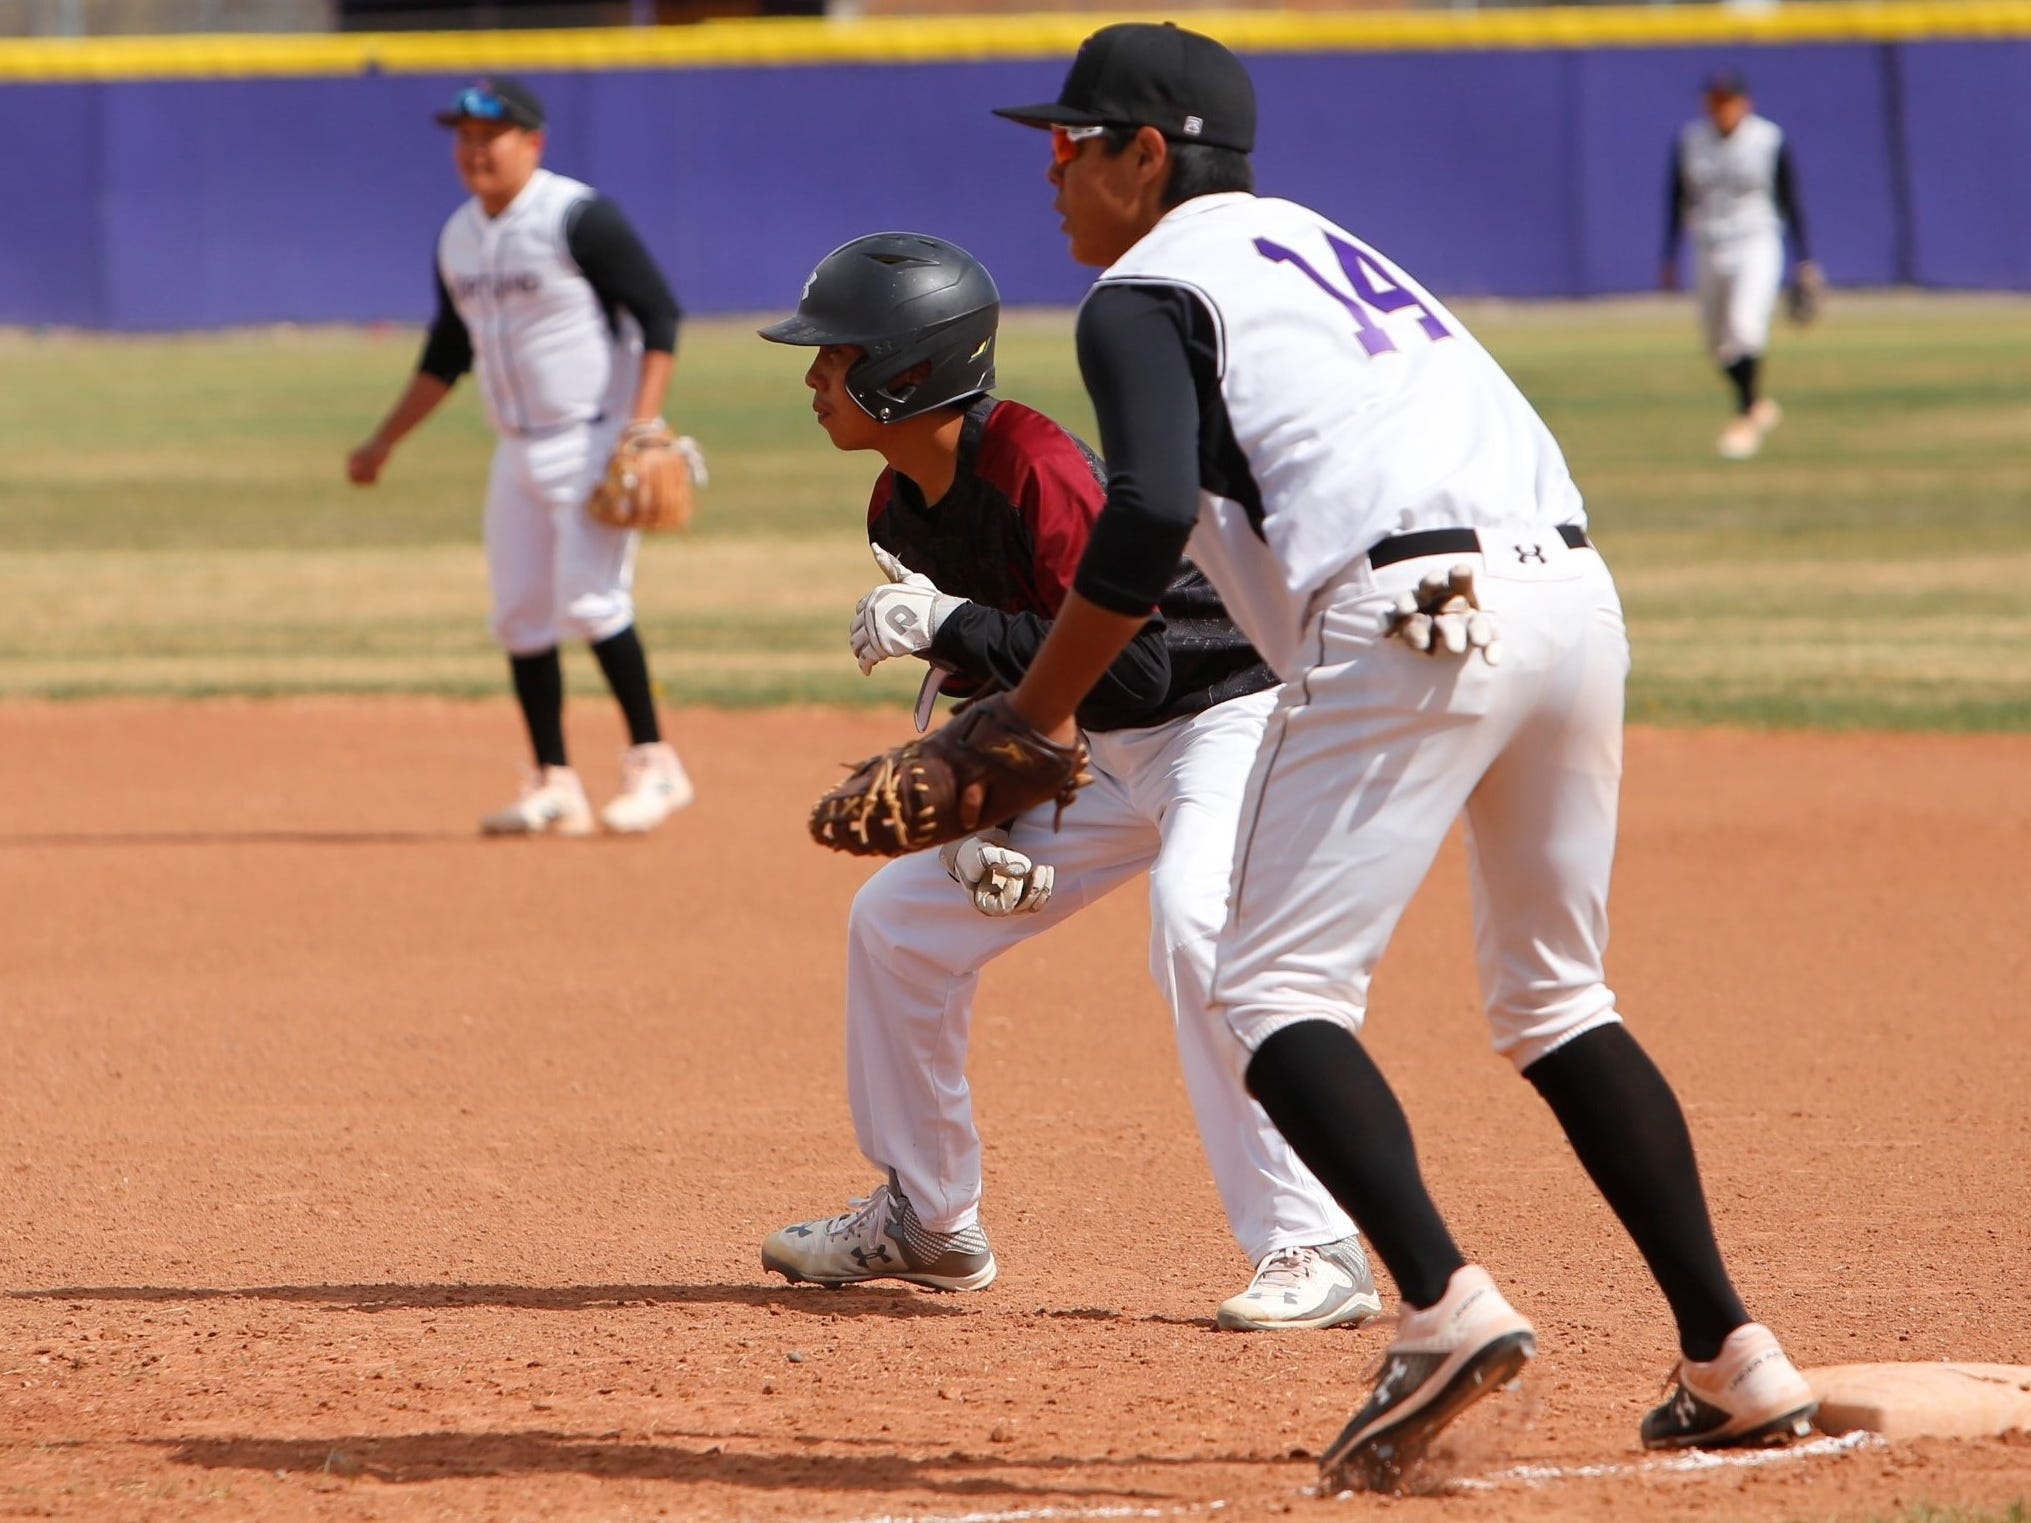 Shiprock's Raekwon Smart looks to take off toward second base against Kirtland Central's Justin Williams (14) during Thursday's District 1-4A game at KCHS.